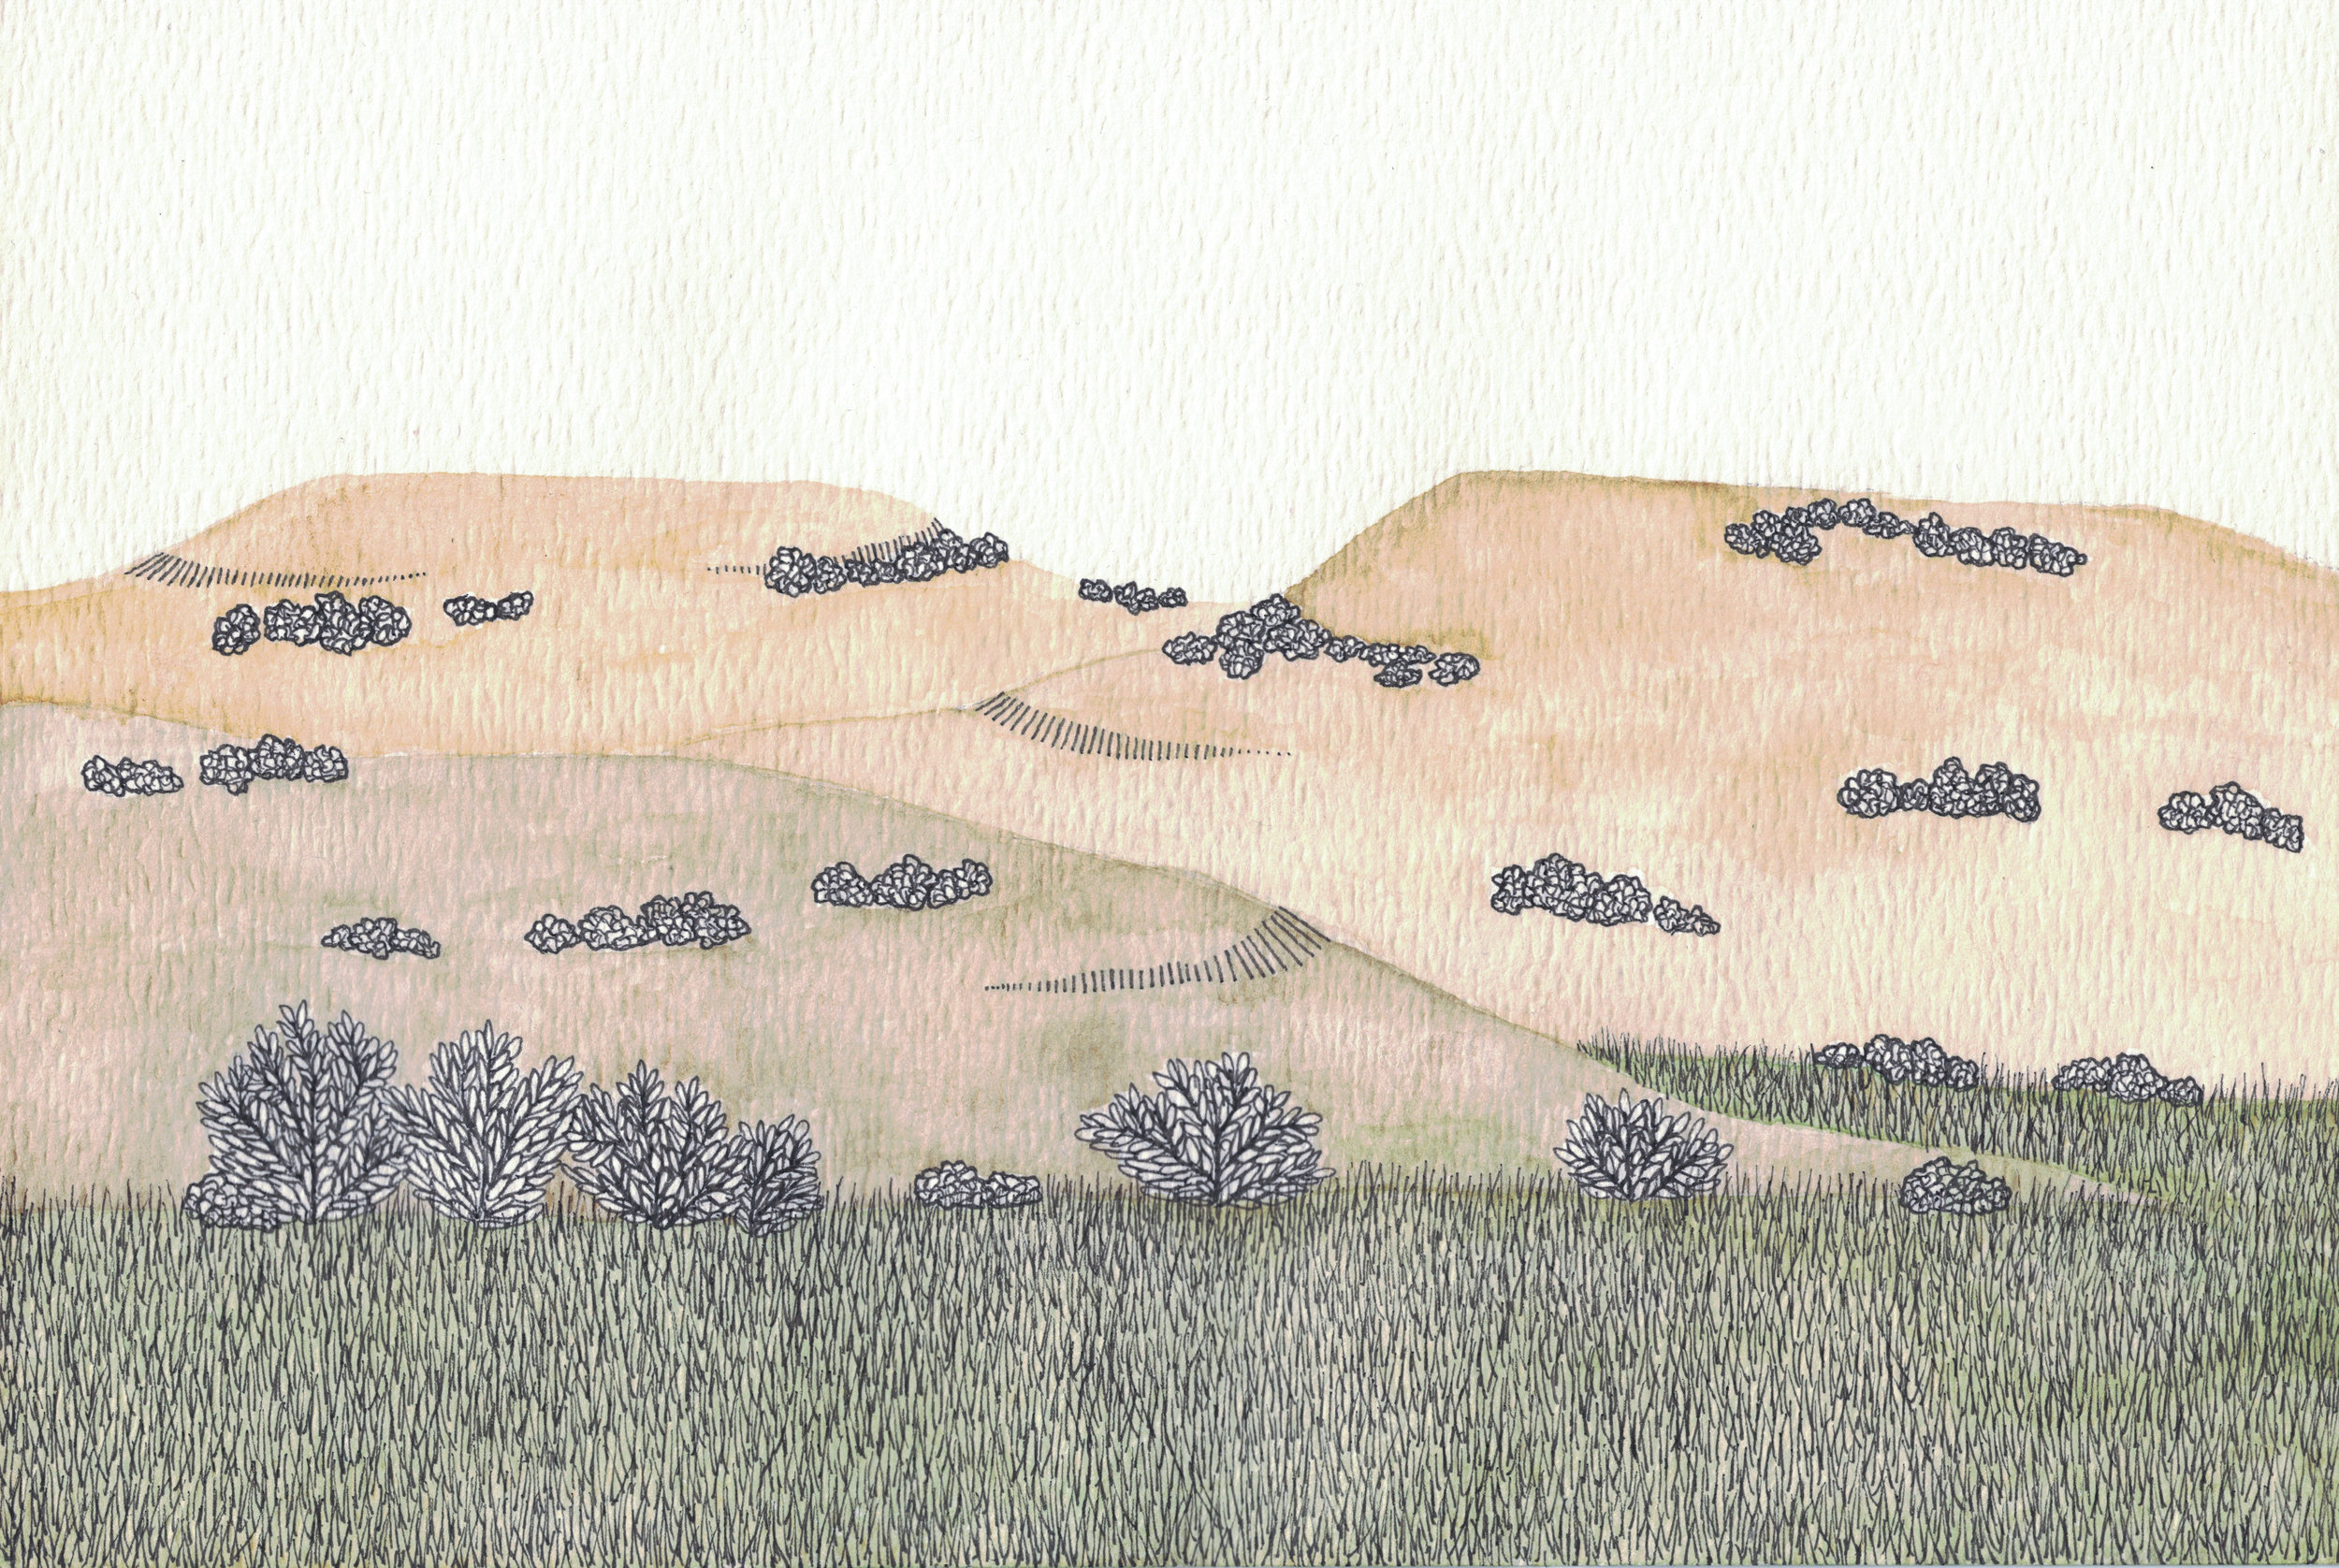 """Hill Country 5  Watercolor and Ink on Paper, 6"""" x 9"""", 2018, SOLD"""